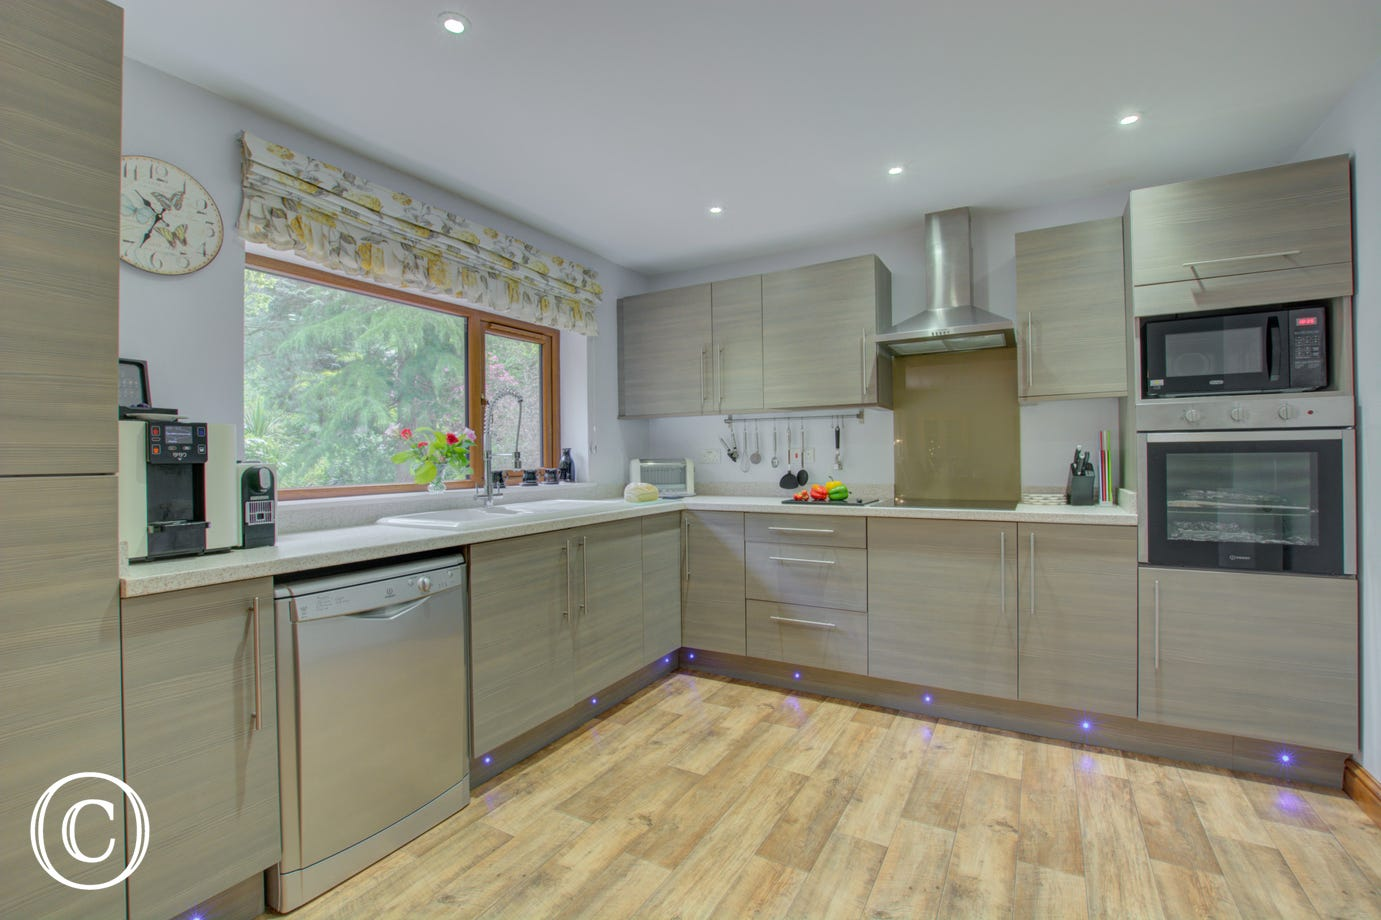 Modern, well equipped kitchen is wonderfully spacious